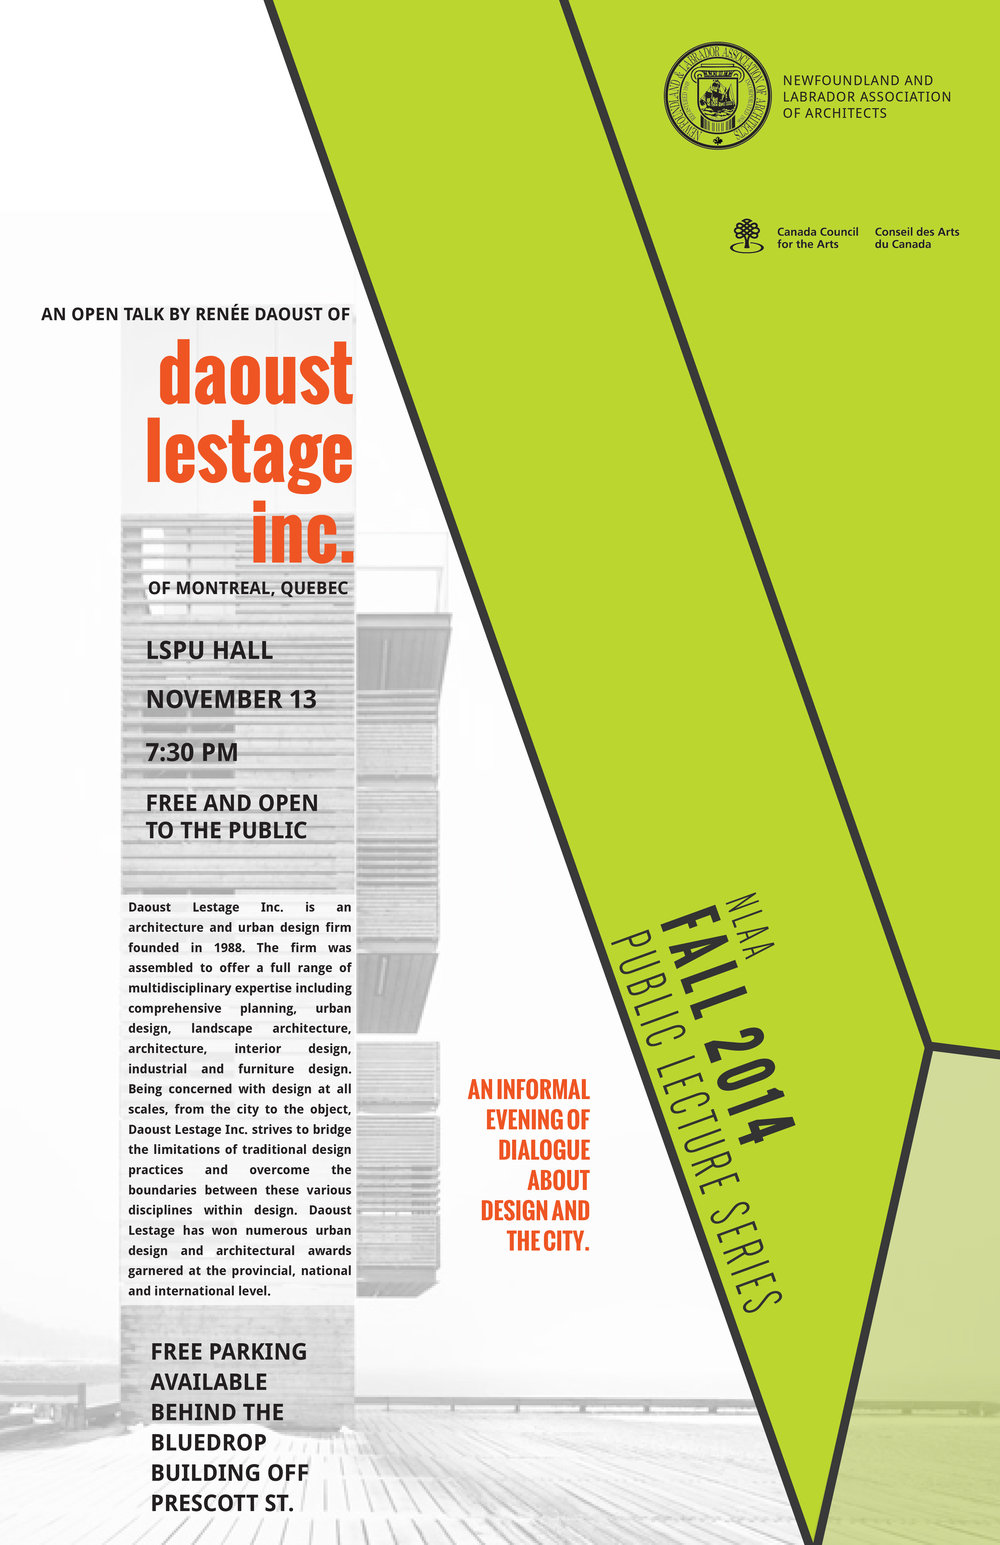 NLAA 2014 Lecture Series - Daoust Lestage Poster.jpg